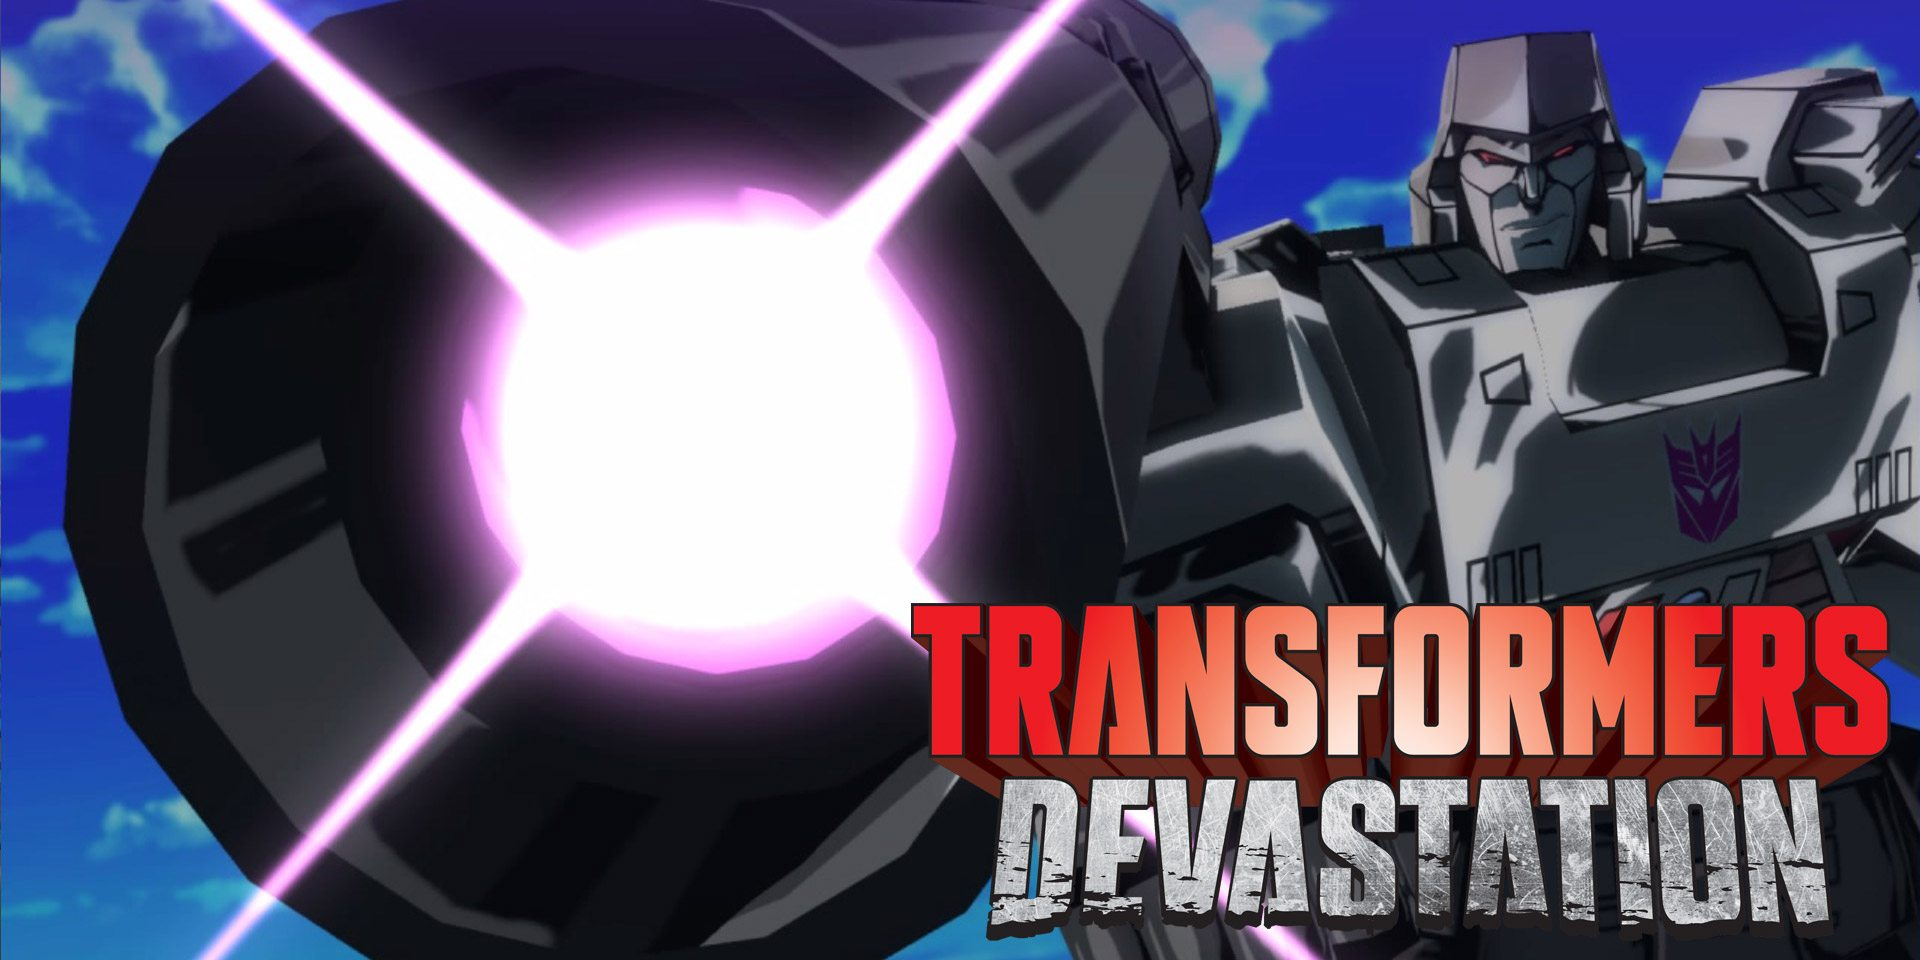 Review: 'Transformers: Devastation' Is a Smash Hit